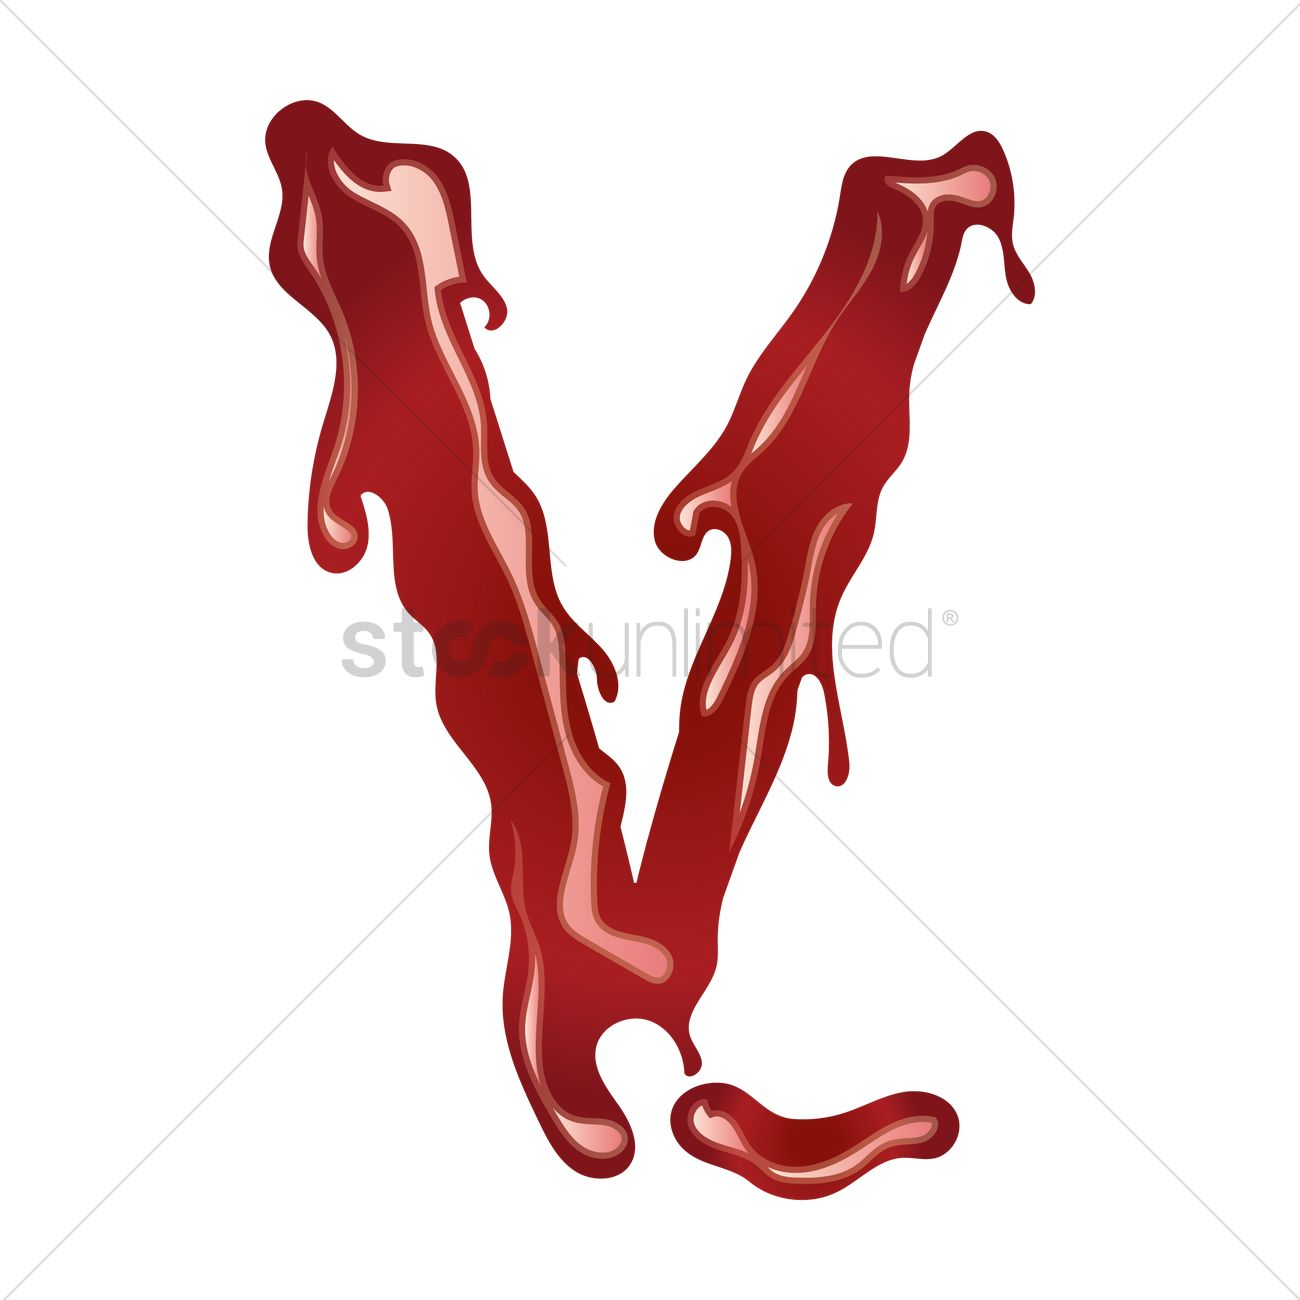 Letter V With Dripping Blood Vector Image 1499420 Stockunlimited